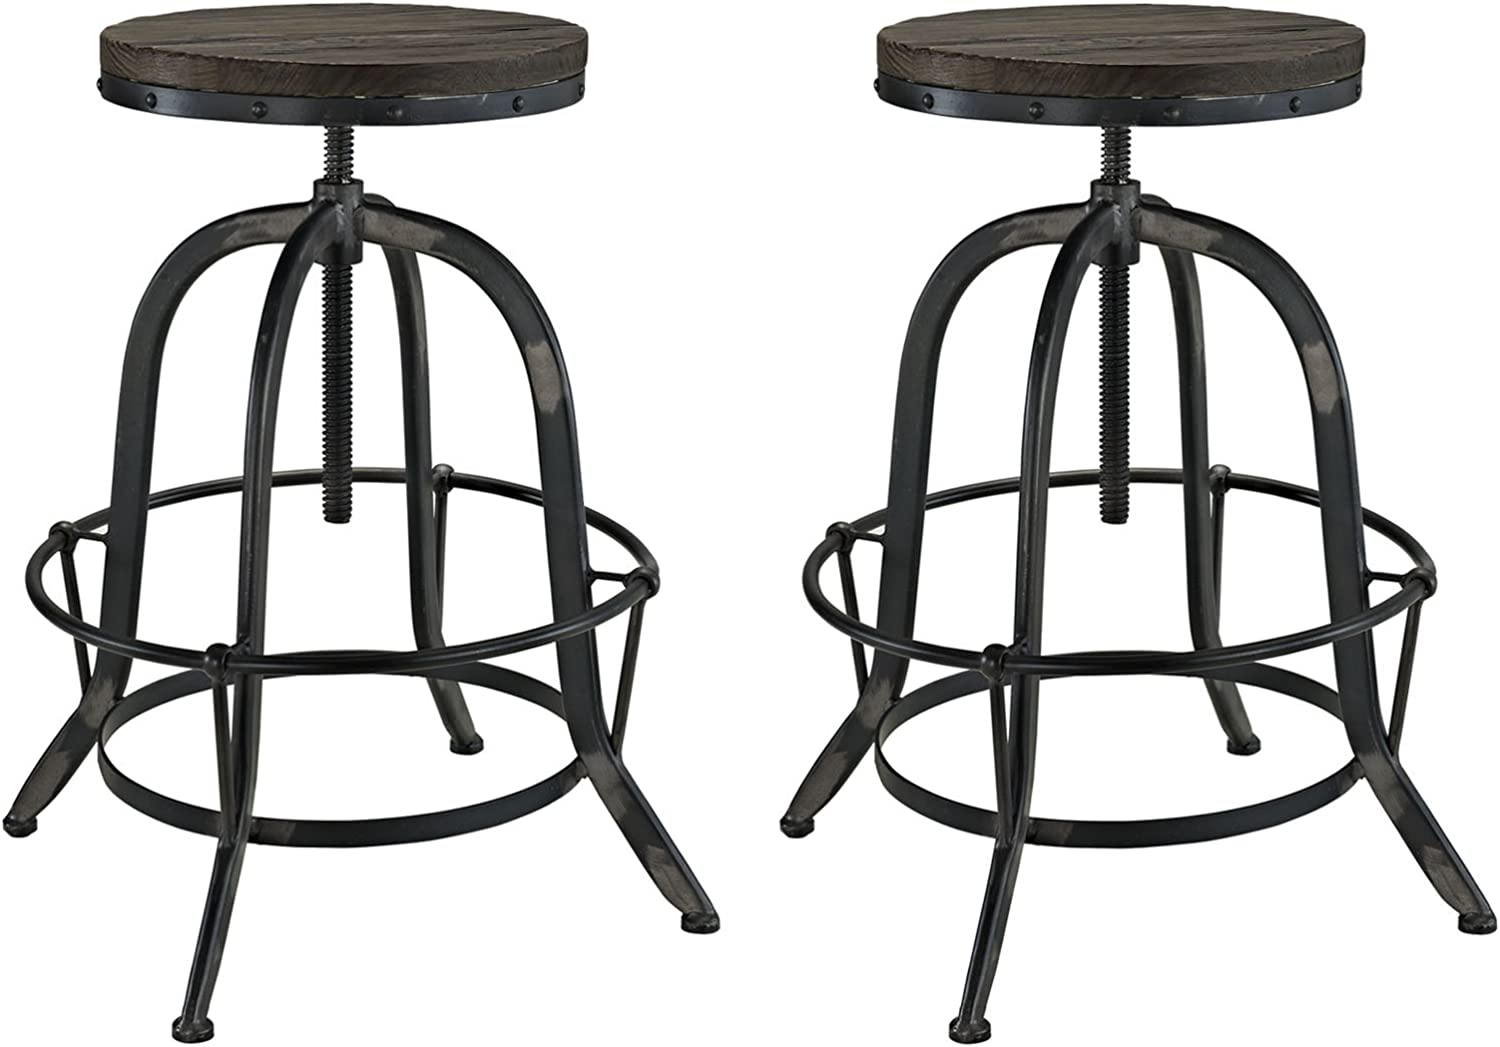 Modway Collect Industrial Modern Rustic Farmhouse Pine Wood and Cast Iron Two Backless Bar Stools in Black